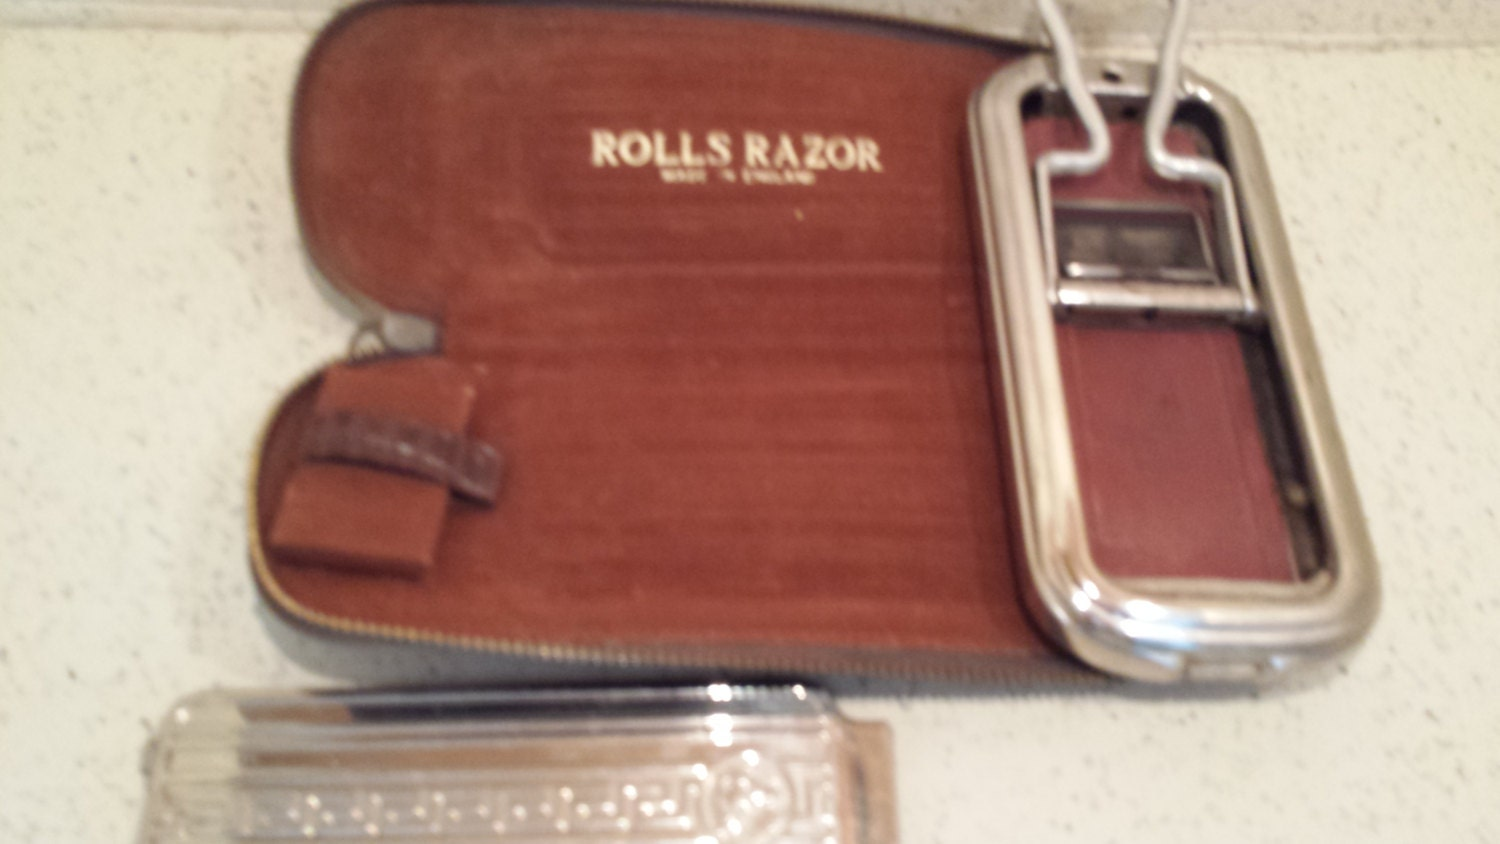 rolls razor made in england in leather case. Black Bedroom Furniture Sets. Home Design Ideas